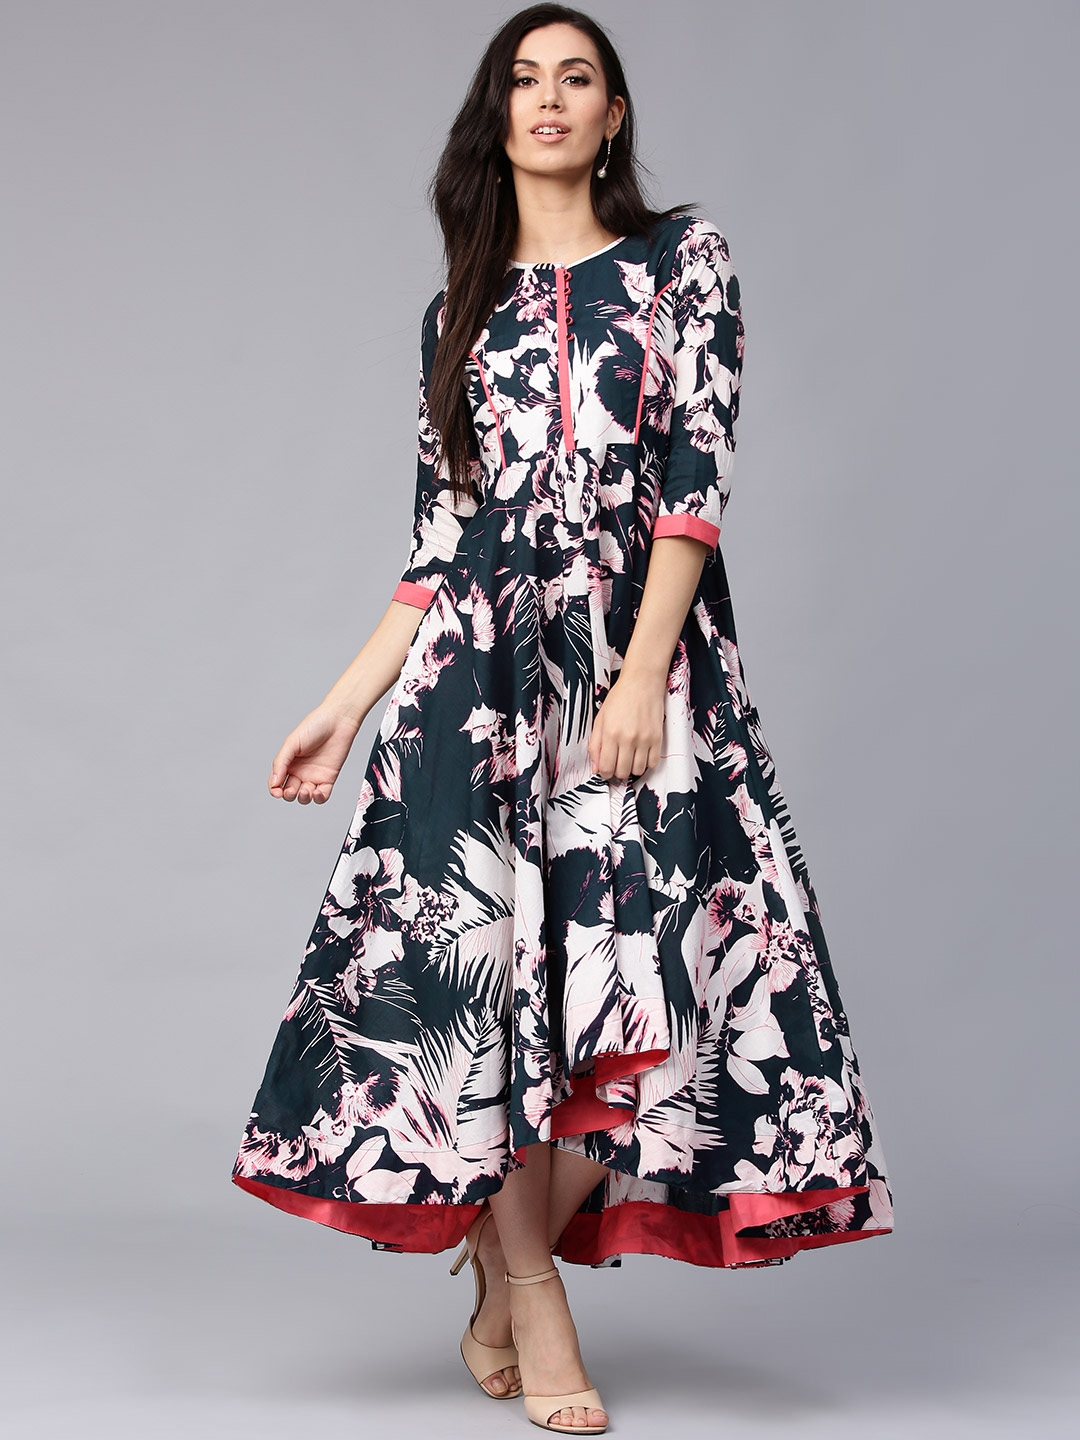 Dresses pictures for women